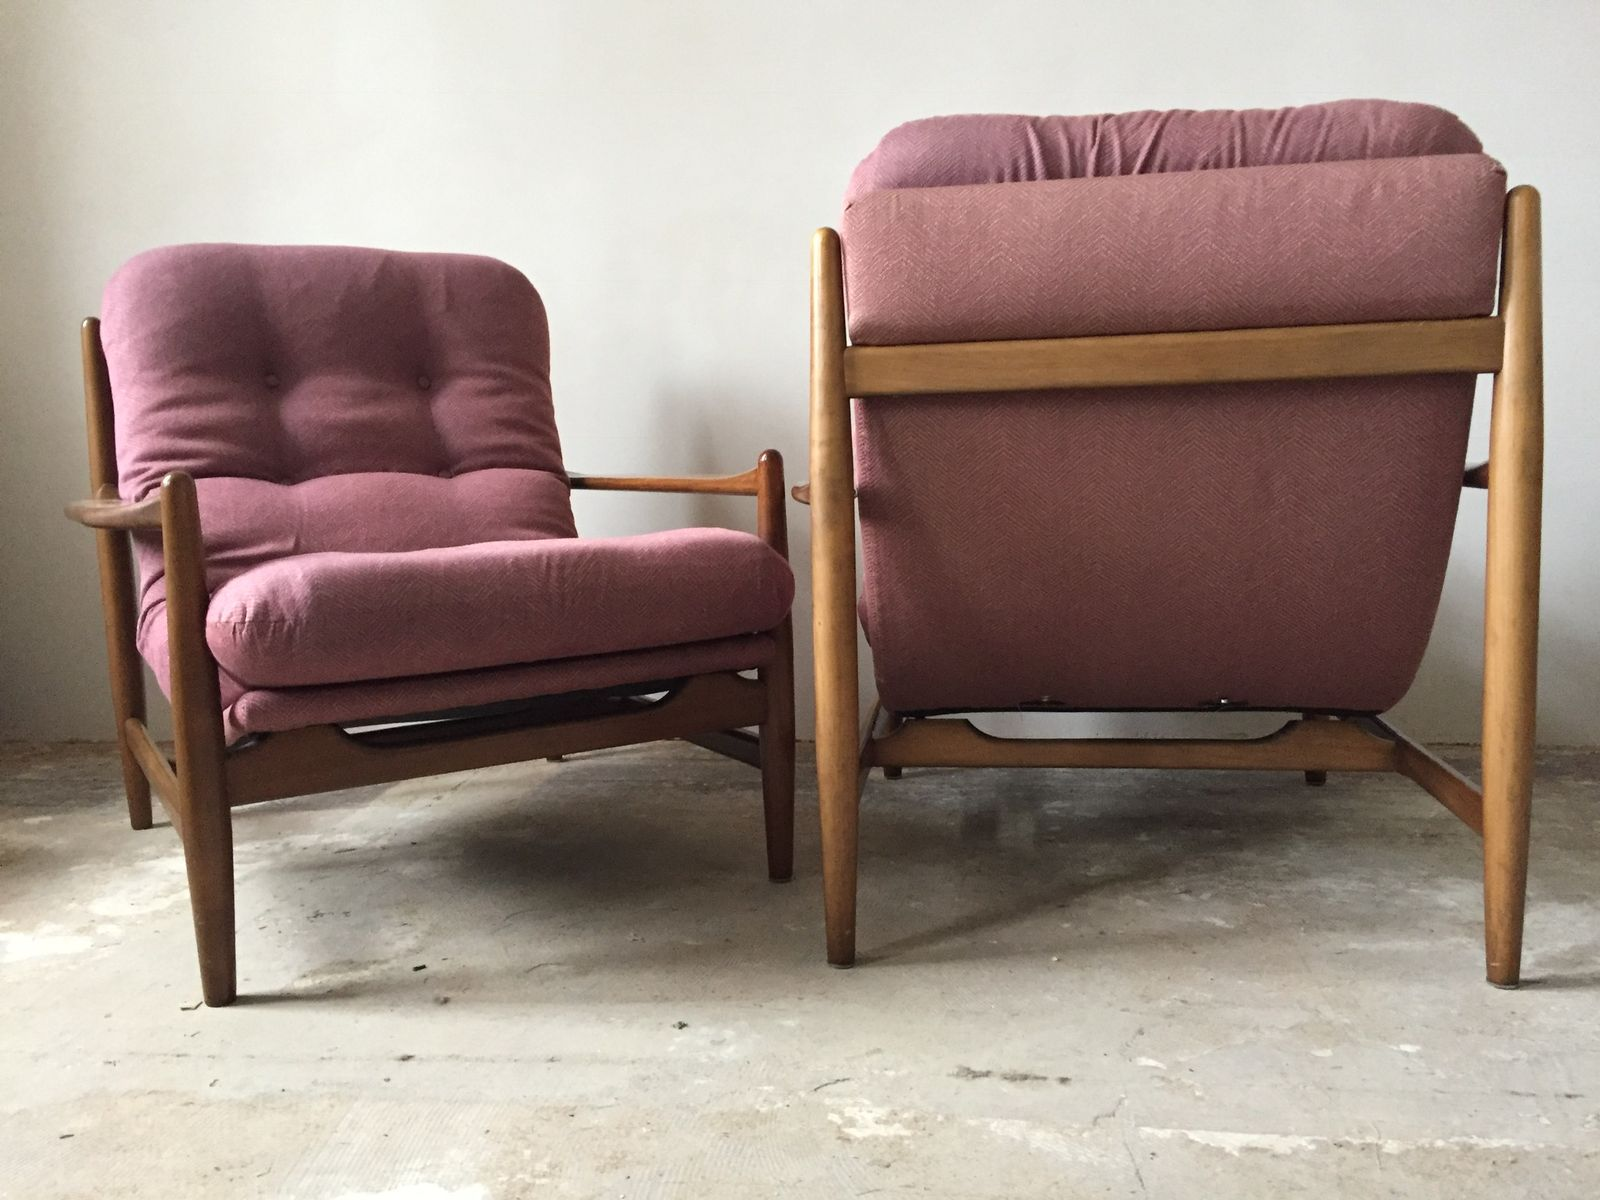 Vintage lounge chairs 1960s set of 2 for sale at pamono - Vintage lyon lounge ...